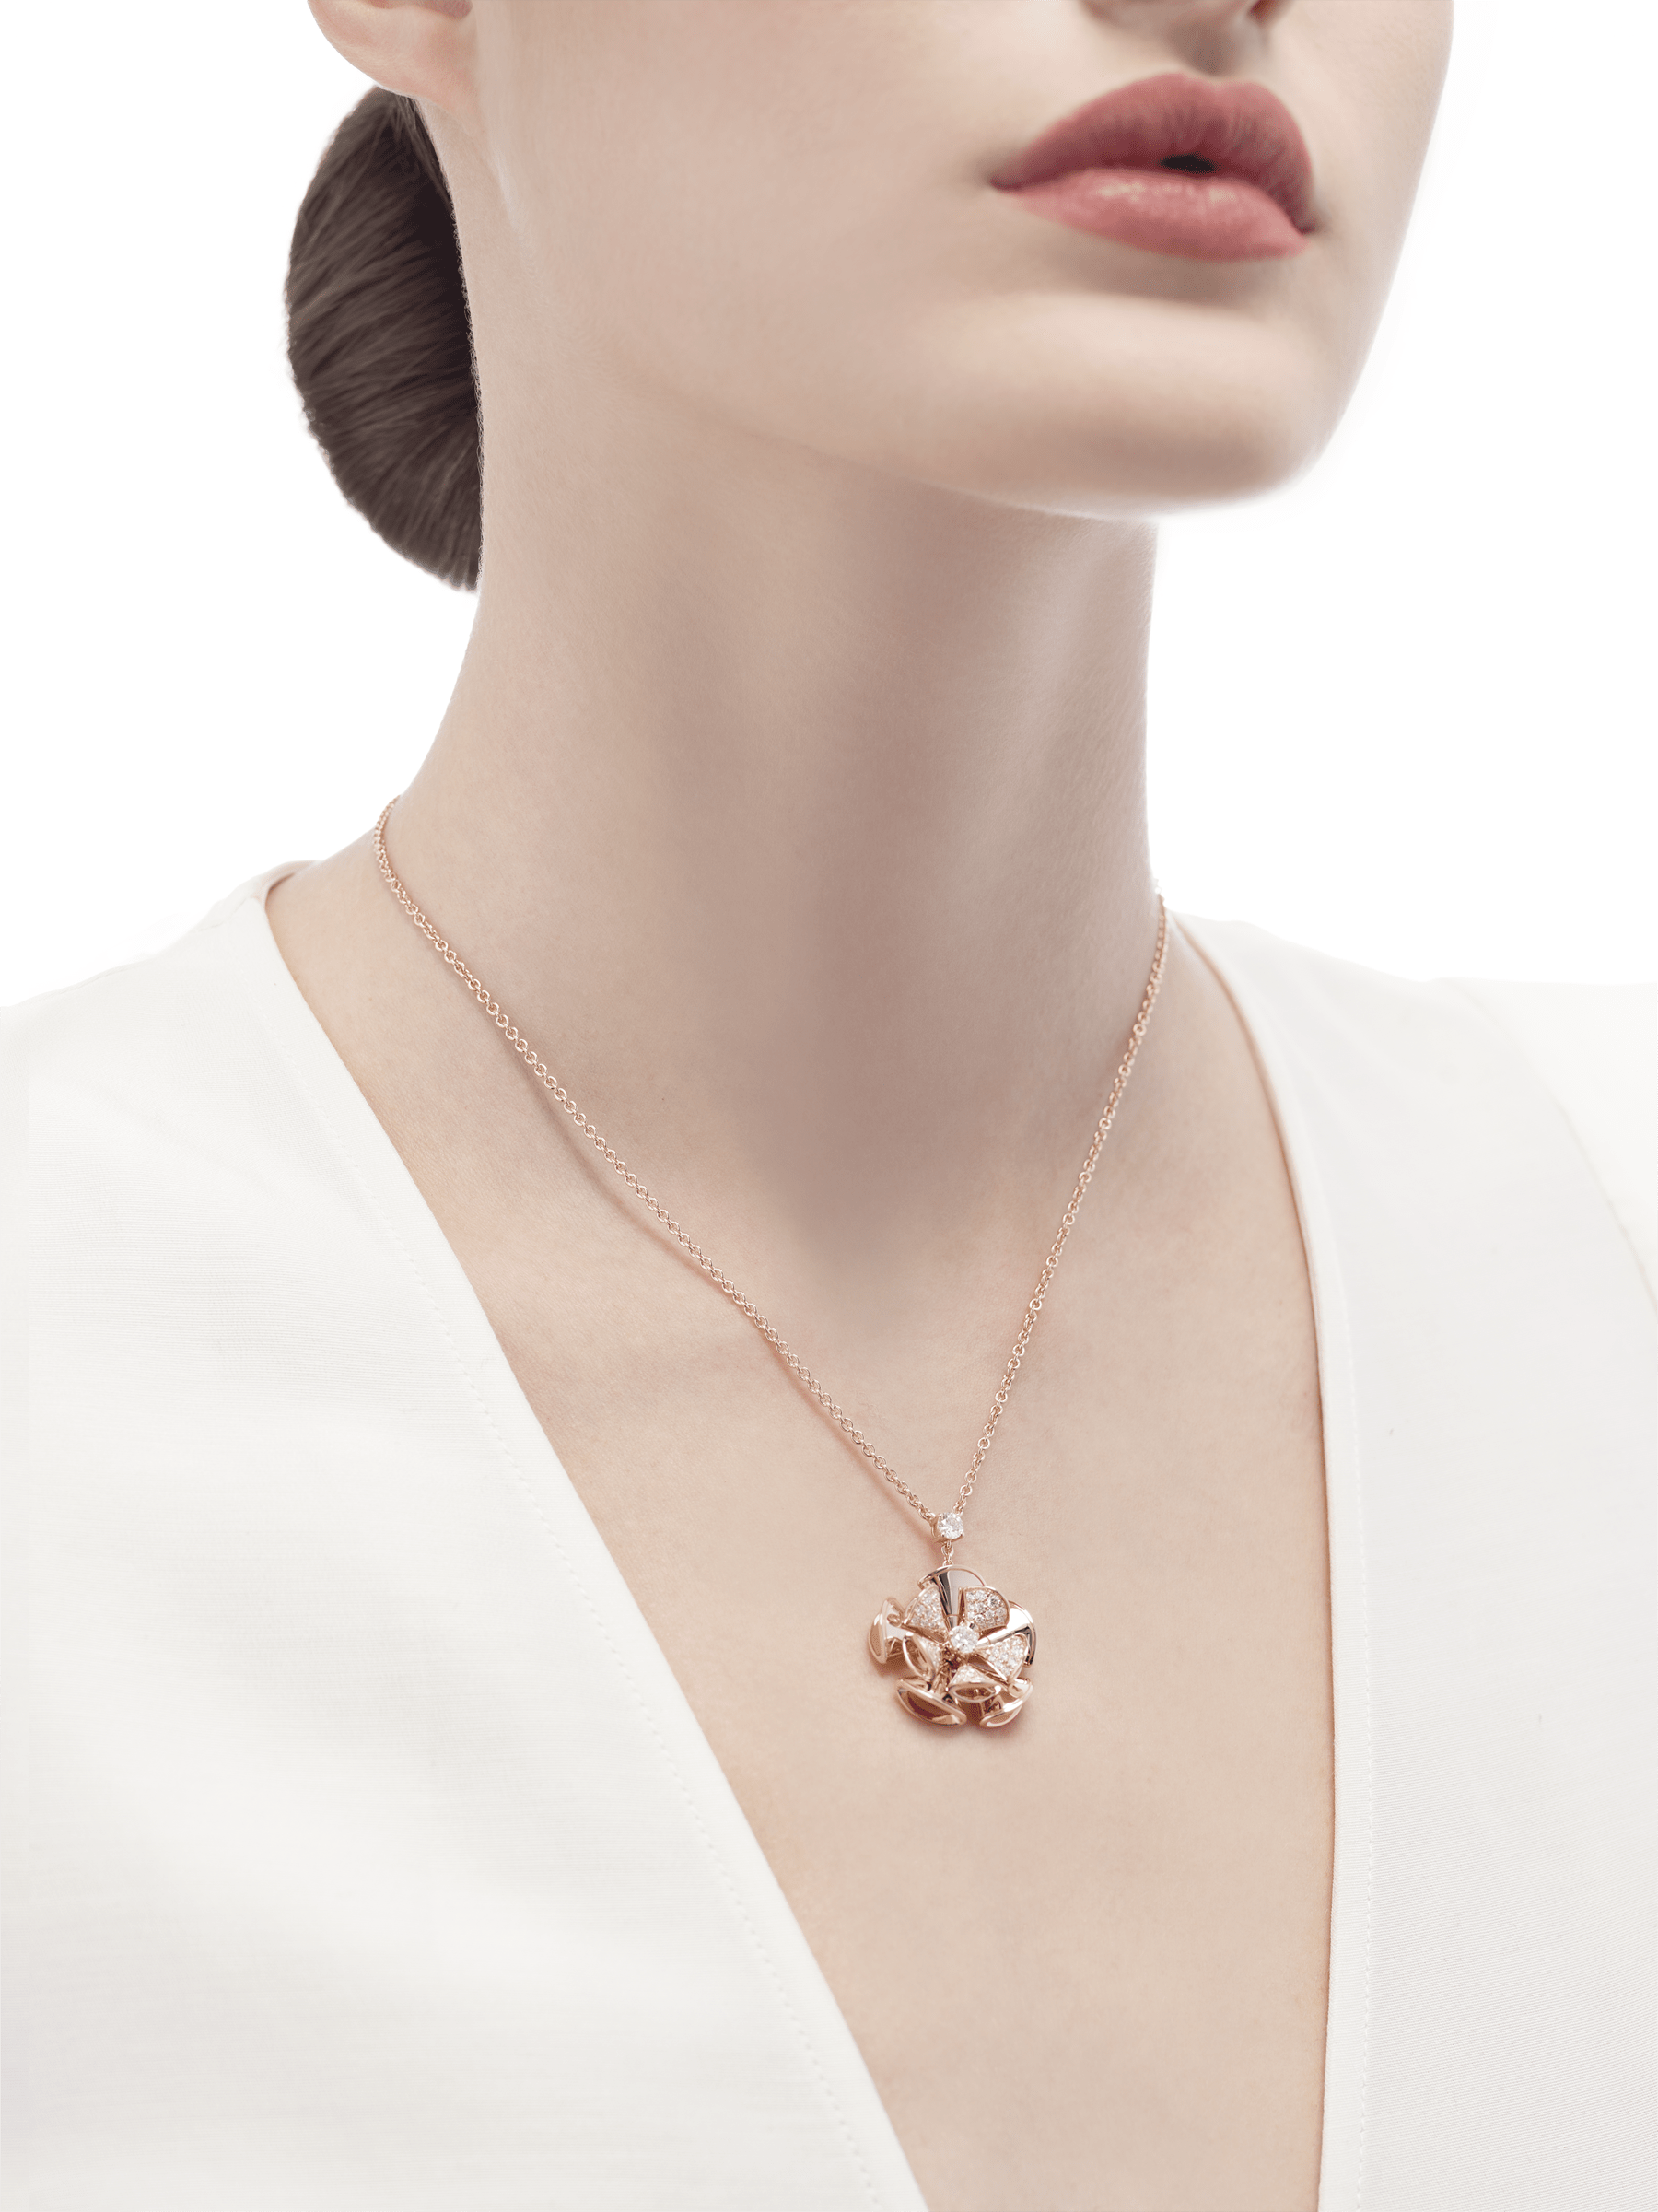 DIVAS' DREAM necklace in 18 kt rose gold with a diamond on the chain and 18 kt rose gold pendant set with central diamond and pavé diamonds. 350783 image 4